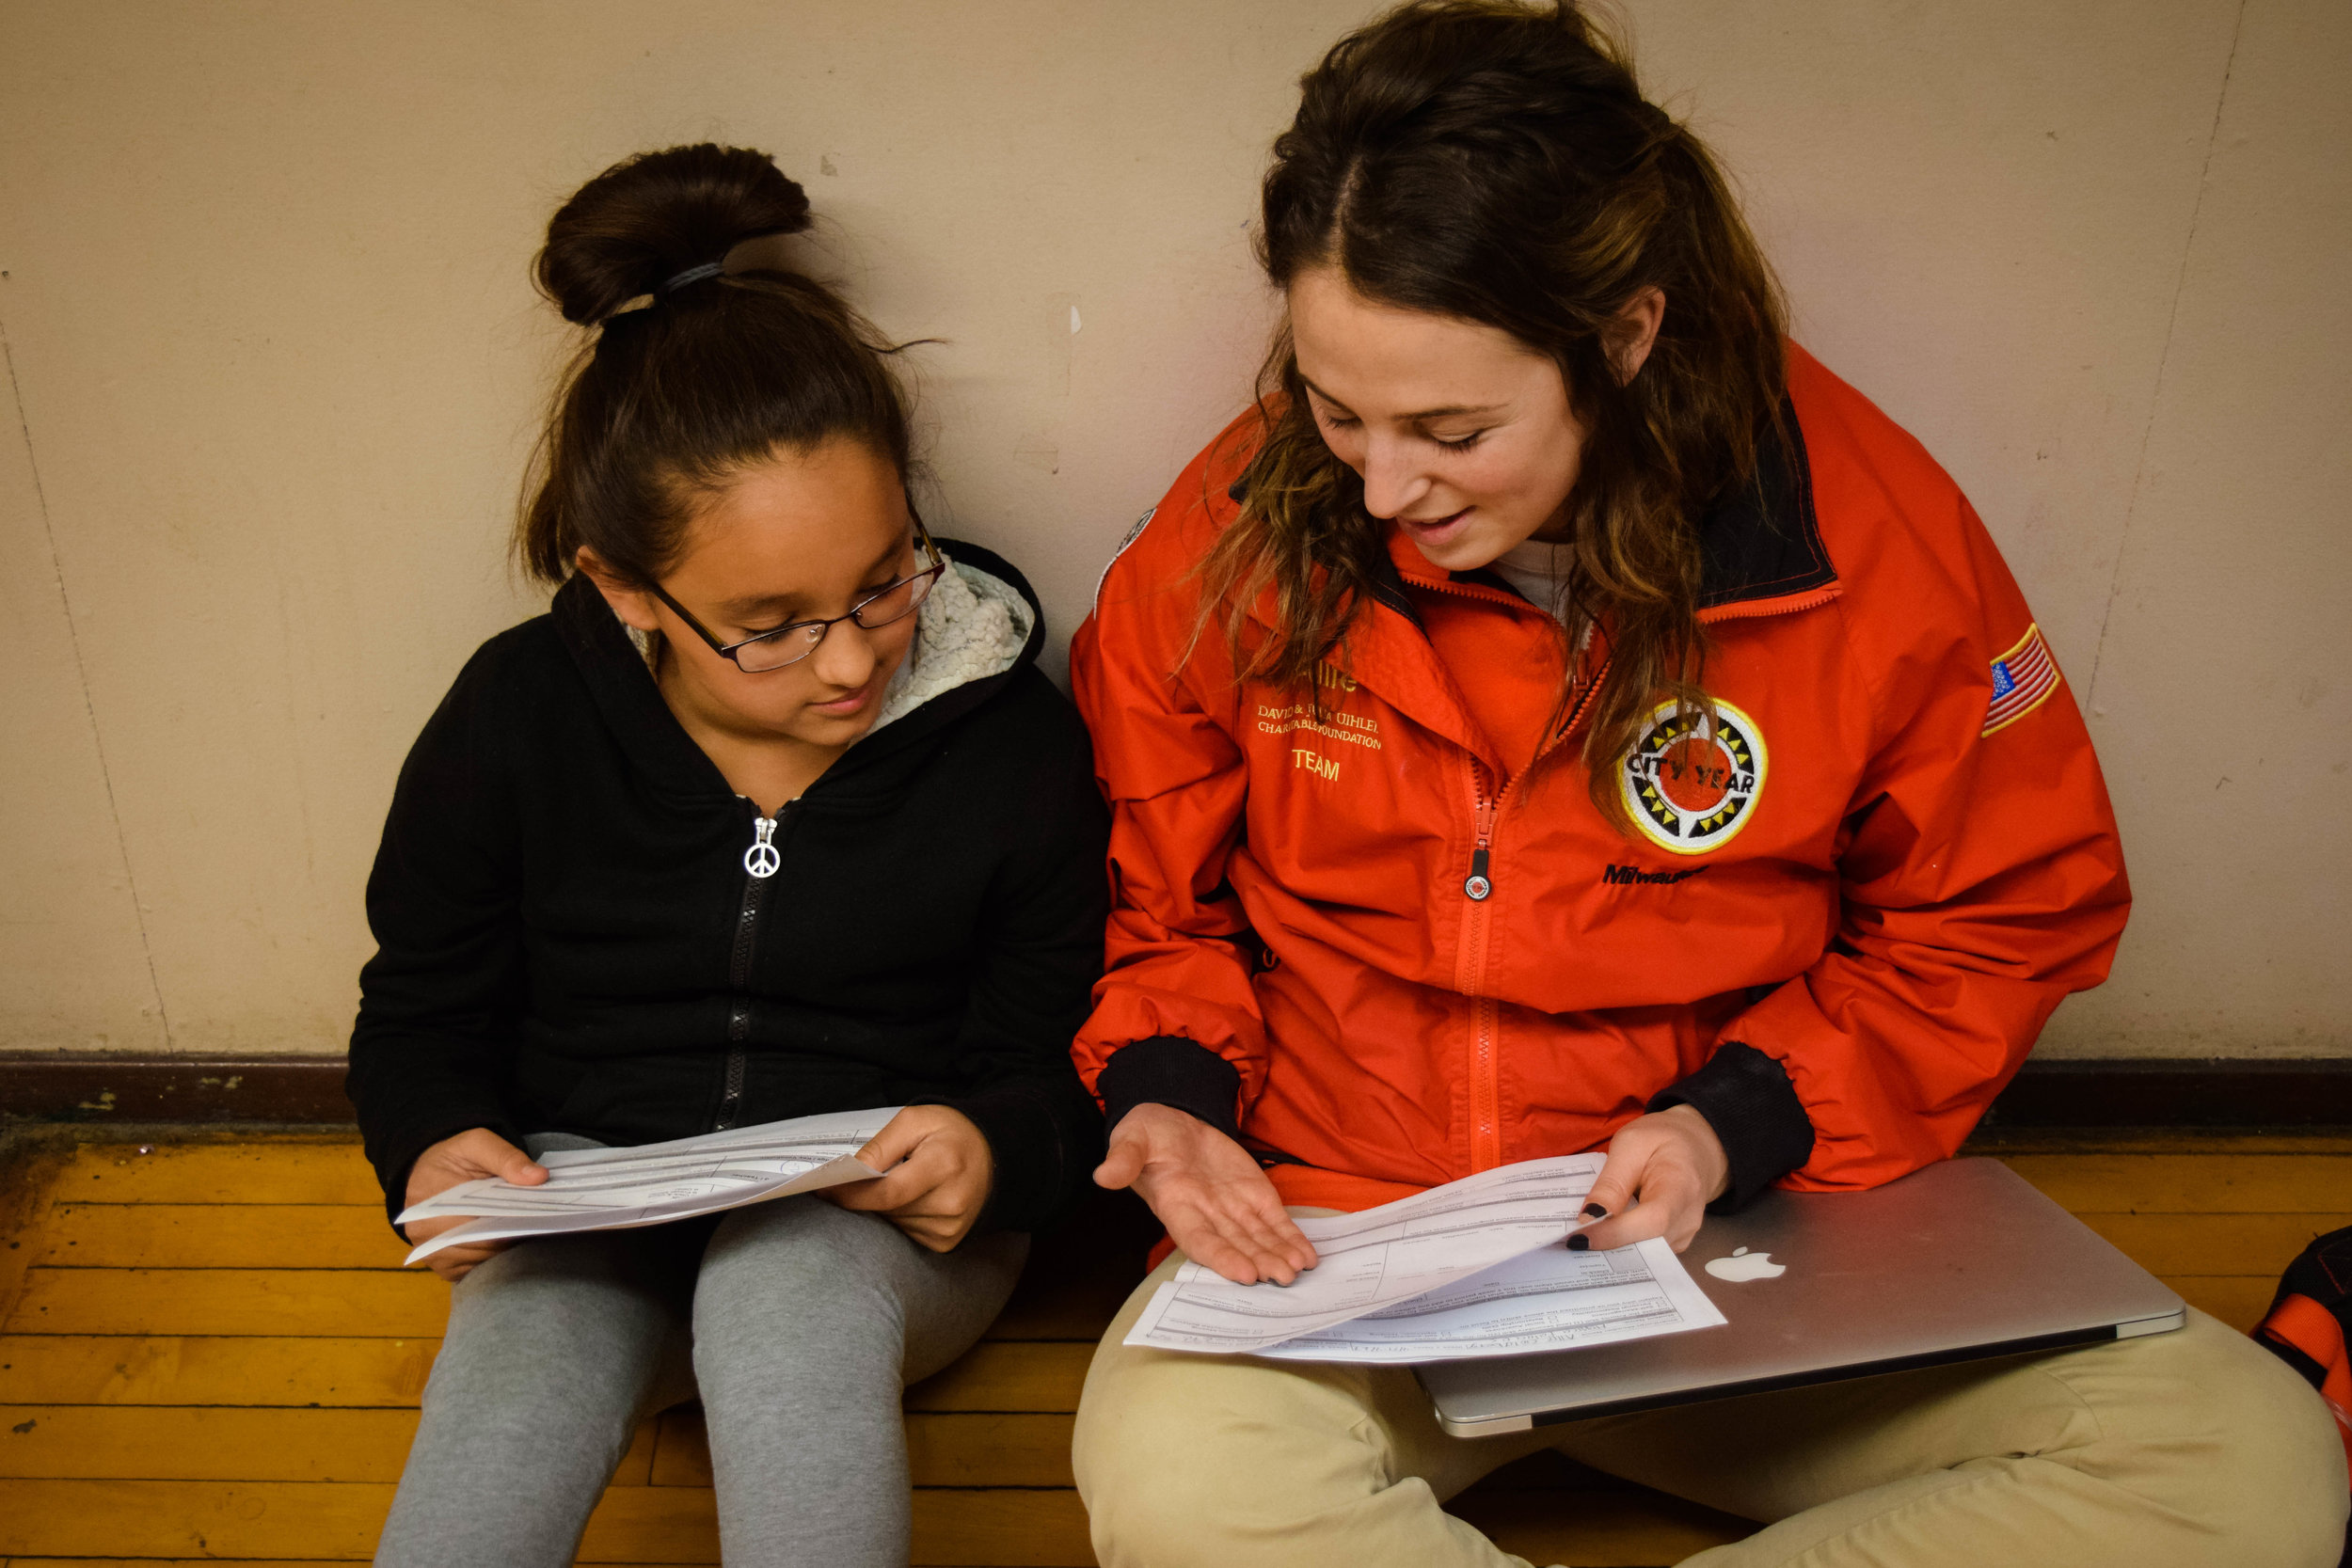 10:30am Attendance & Positive Behavior:  In addition to academic focus list students, corps members have an attendance or positive behavior focus list as well.  Each week, corps members set attendance or leadership goals with students to encourage students to work towards reaching their full potential.